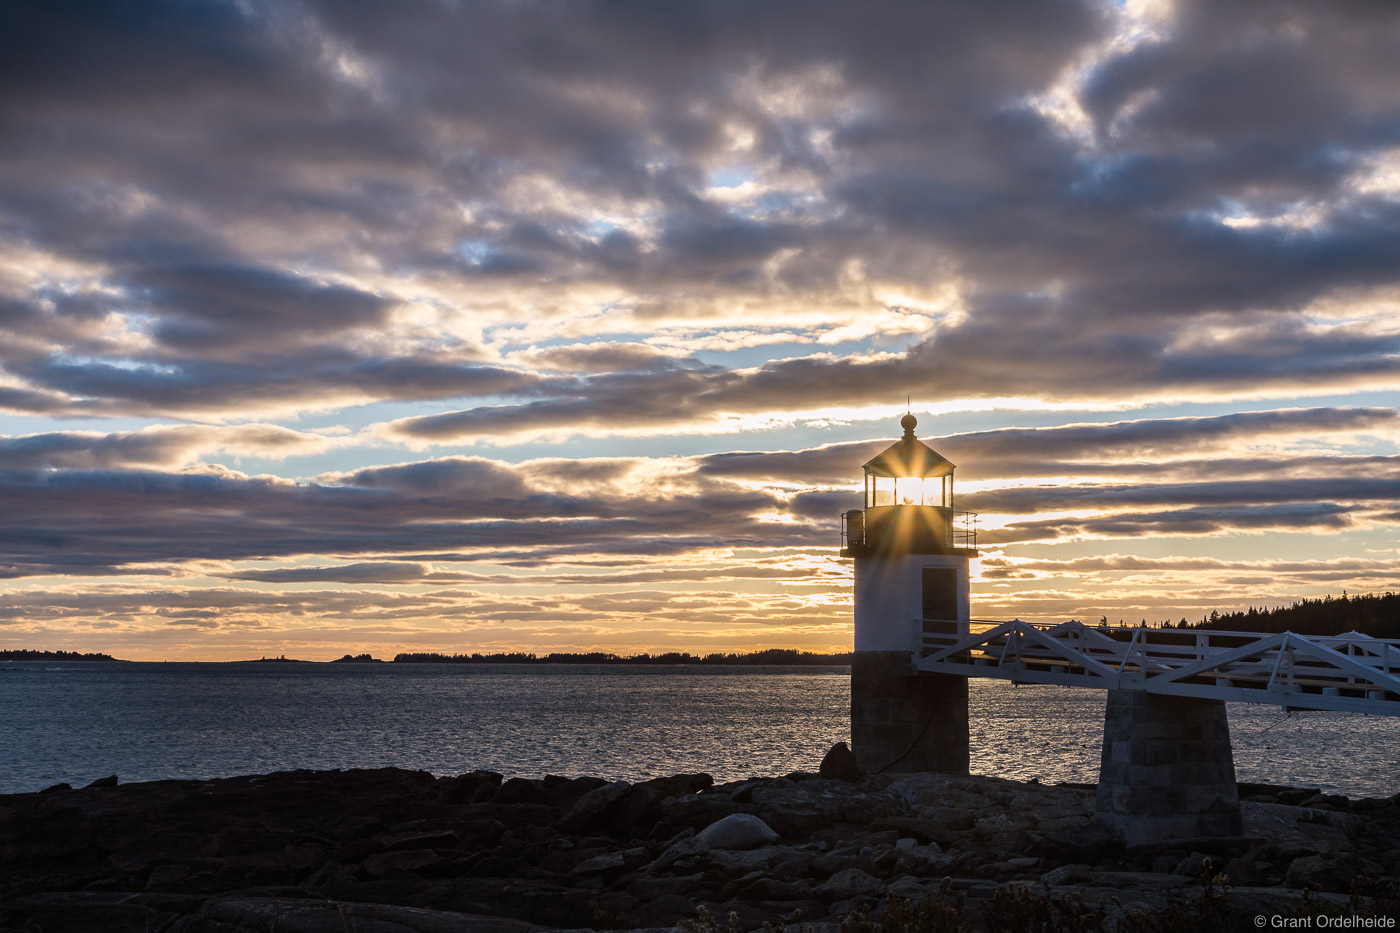 Sunset over the Marshall Point Lighthouse near Port Clyde, Maine.